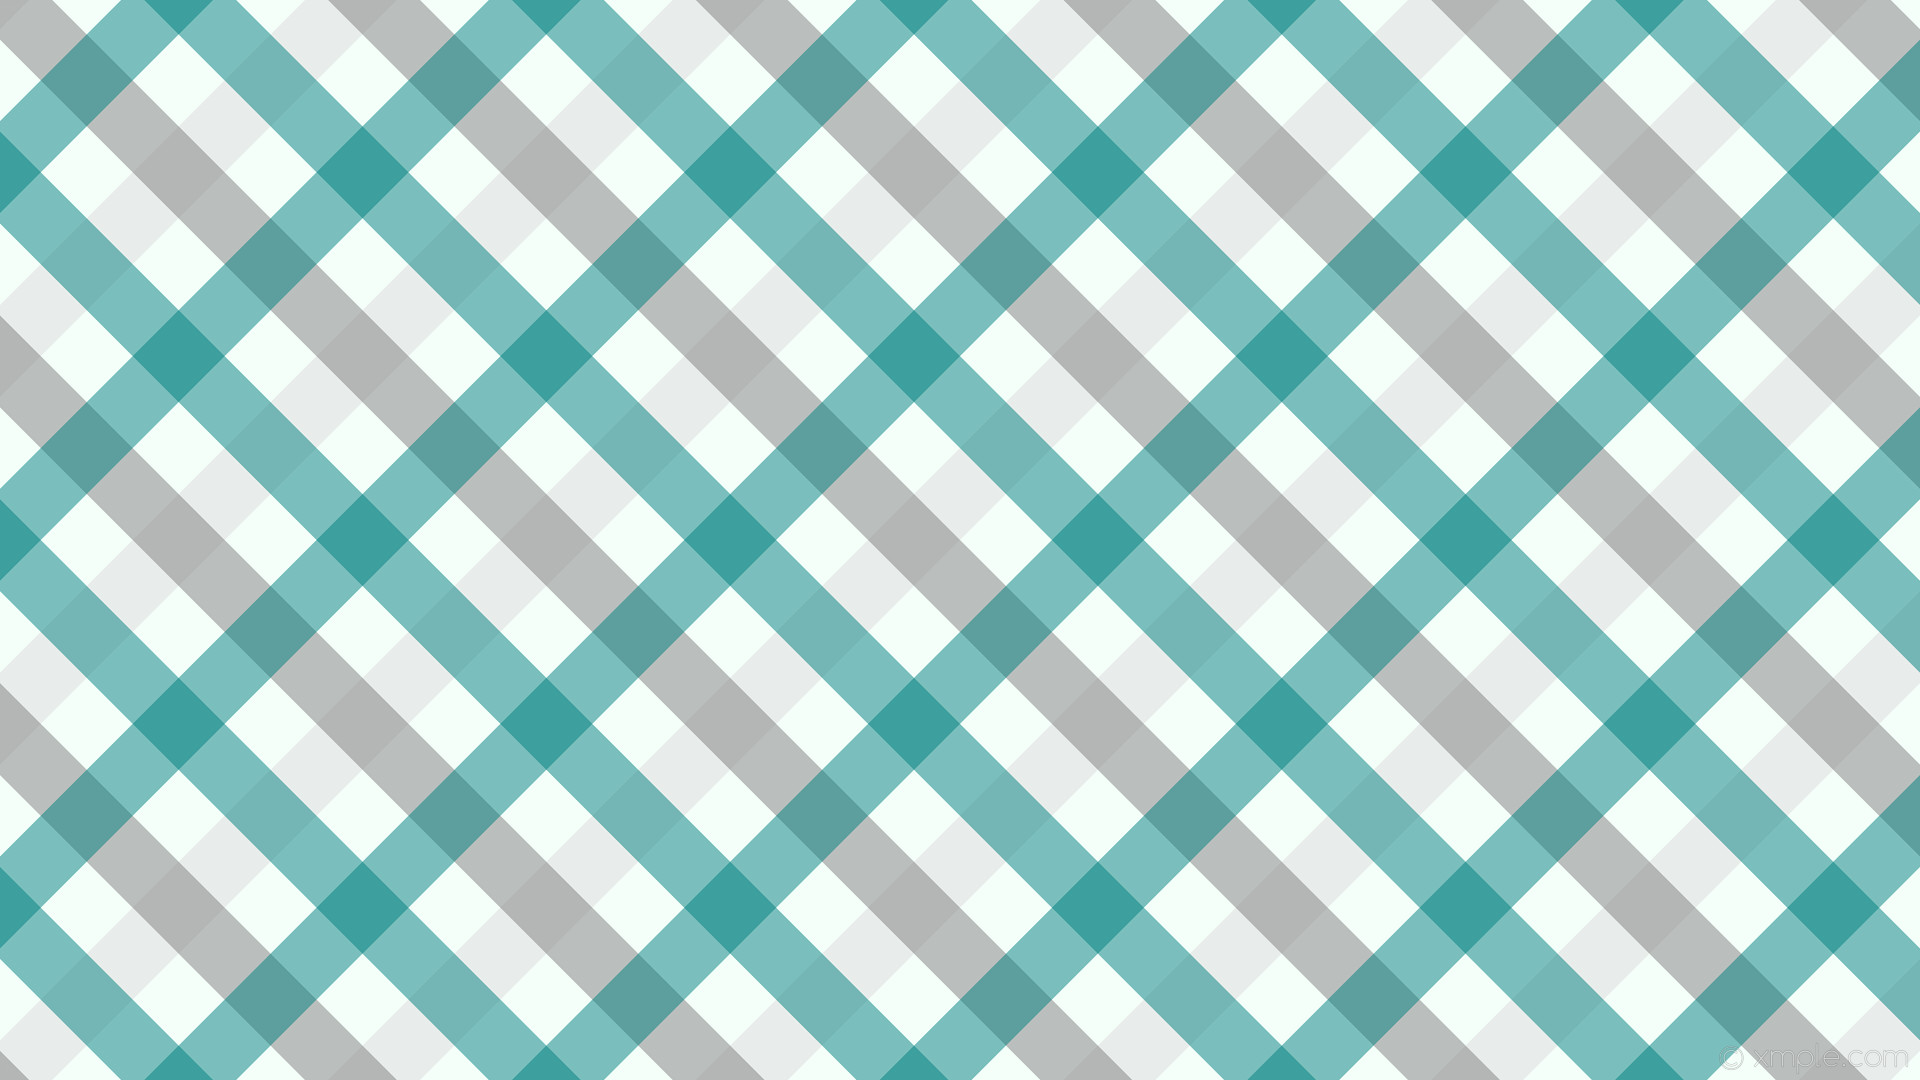 1920x1080 wallpaper white green striped grey gingham quad mint cream gainsboro gray  teal #f5fffa #dcdcdc